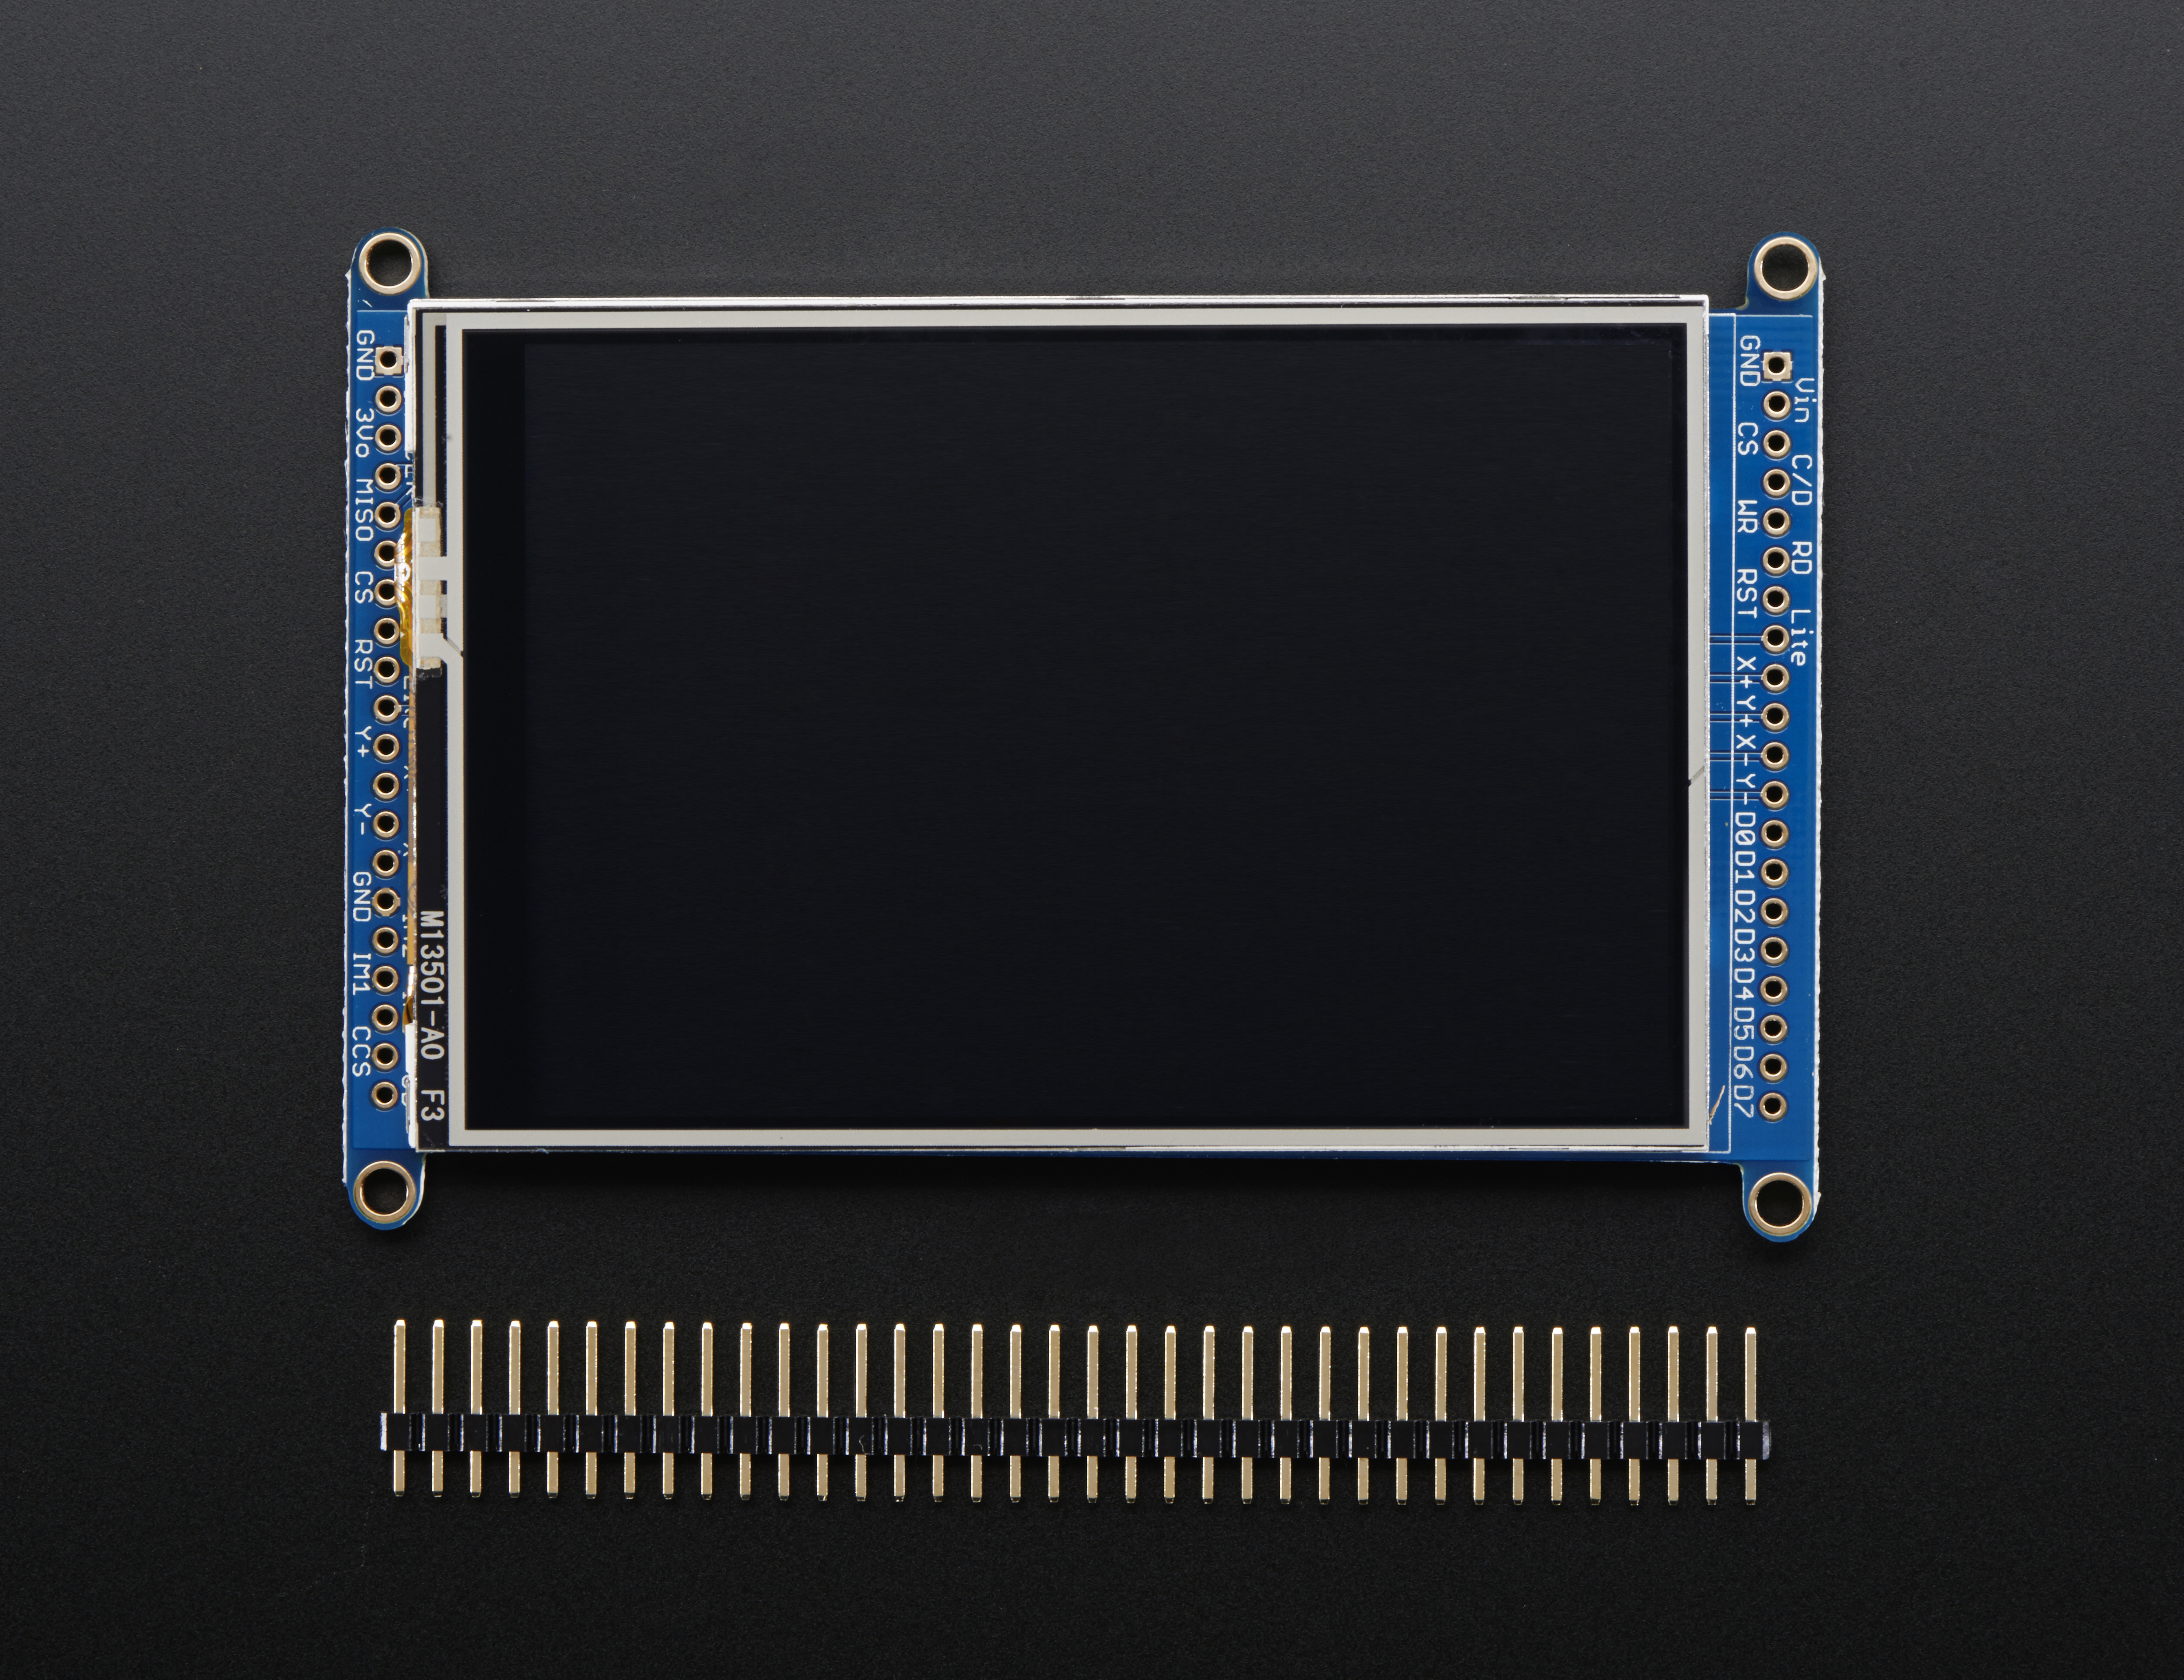 adafruit_products_2050_kit_ORIG.jpg